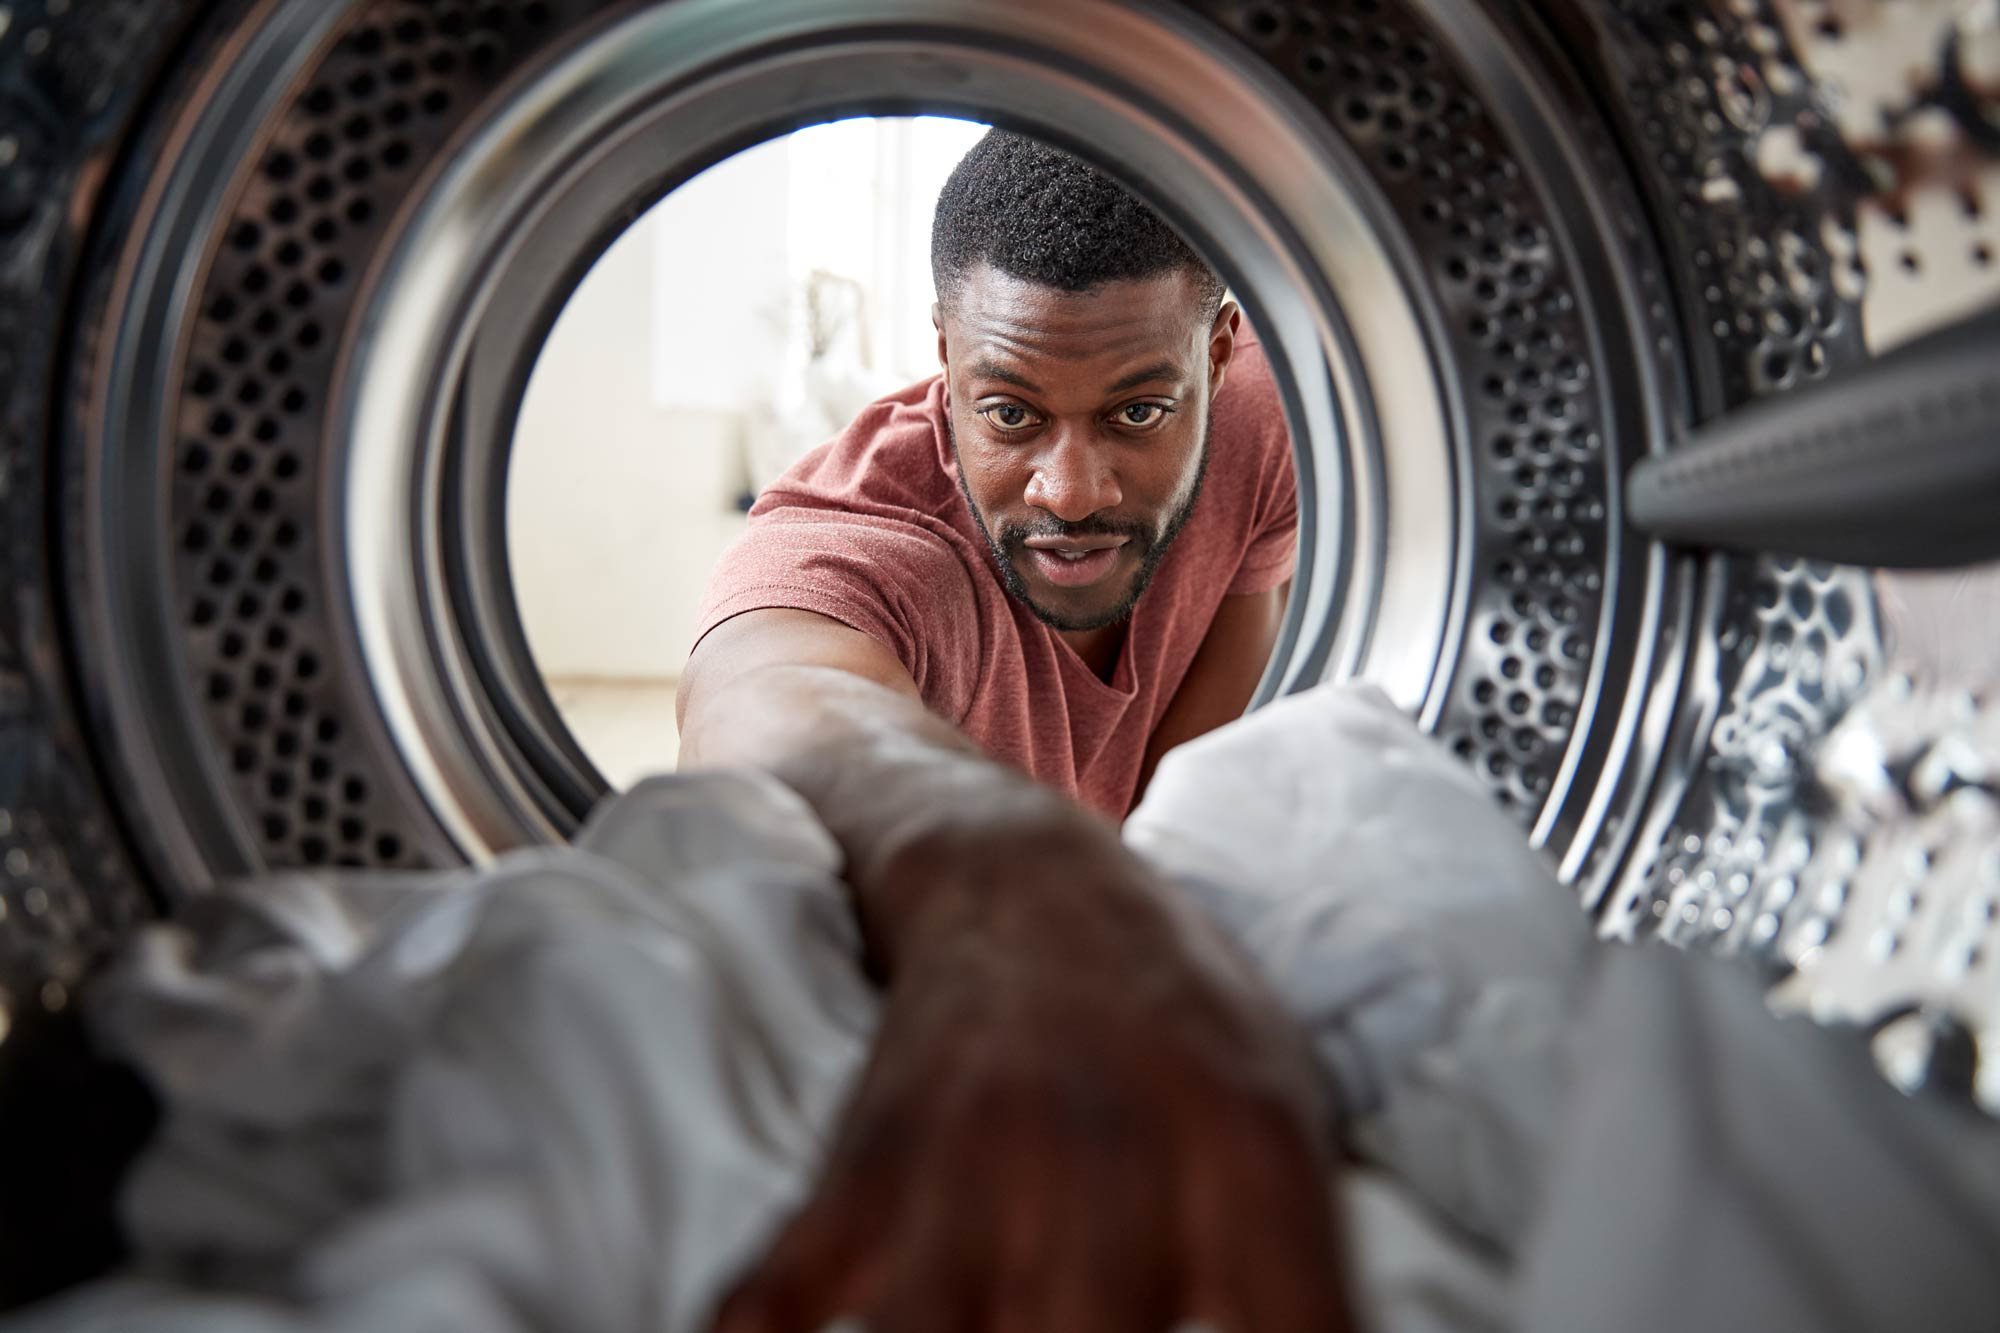 Person removing clothes from dryer